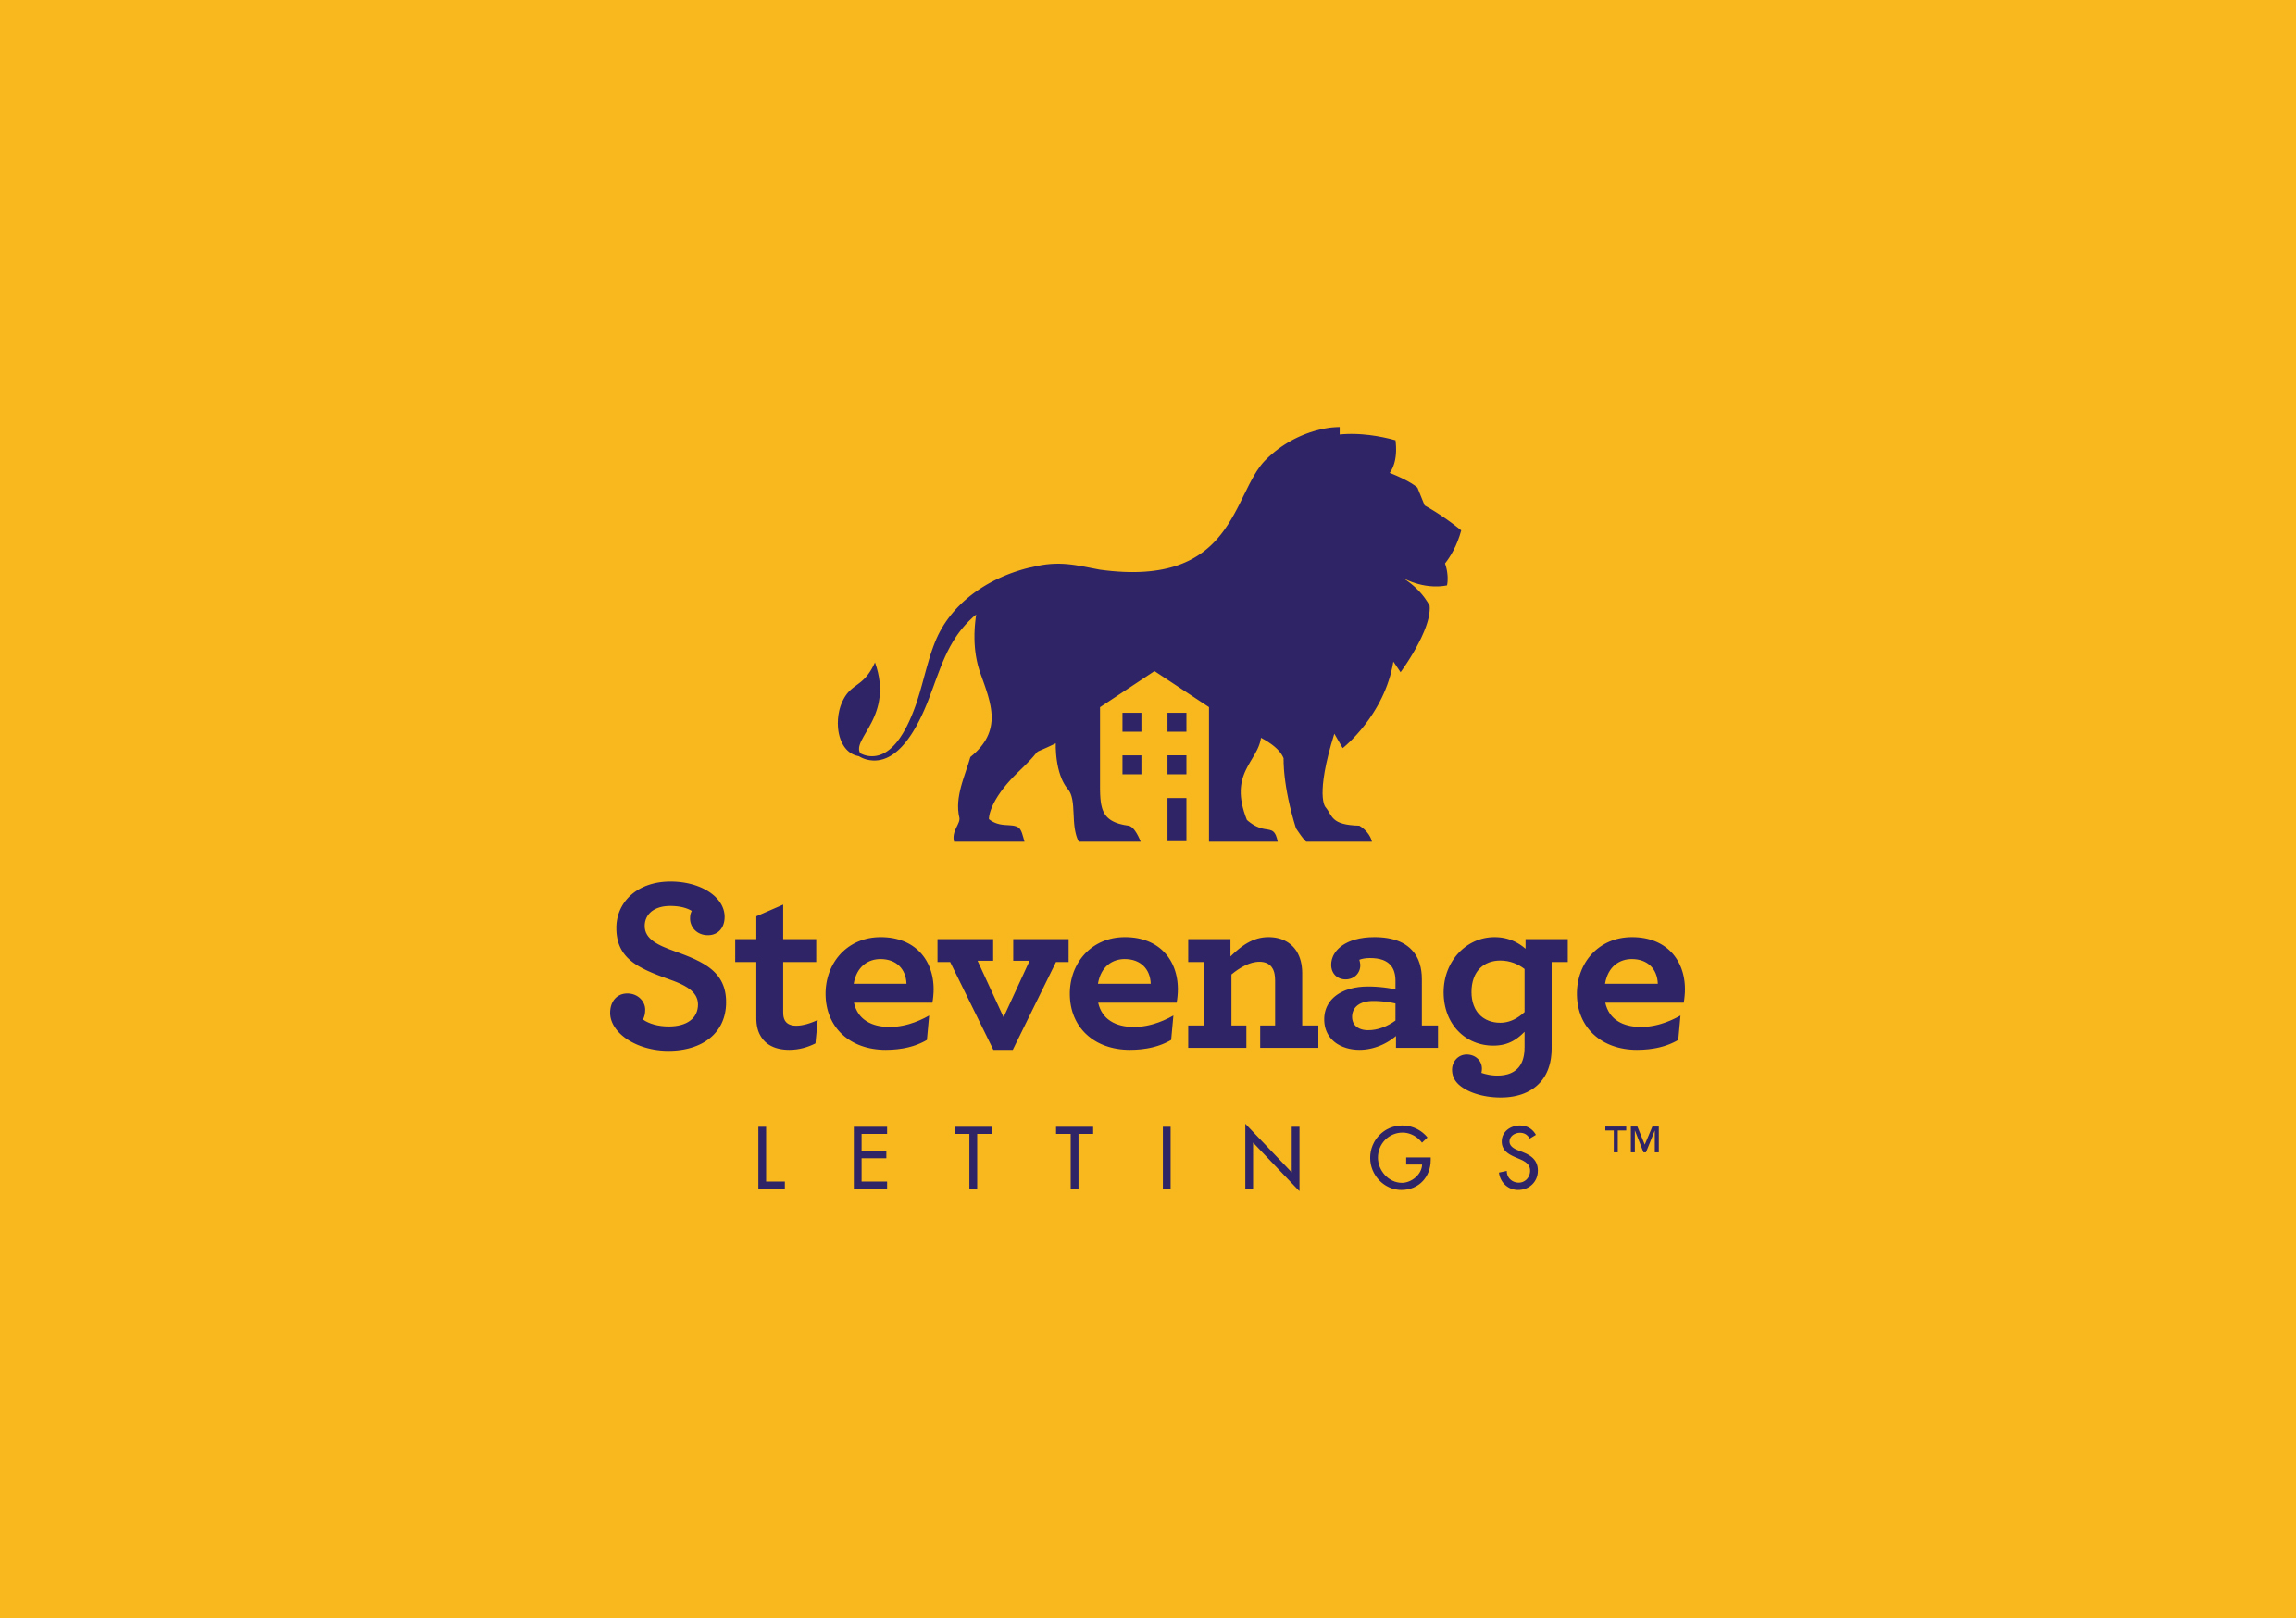 Stevenage Lettings